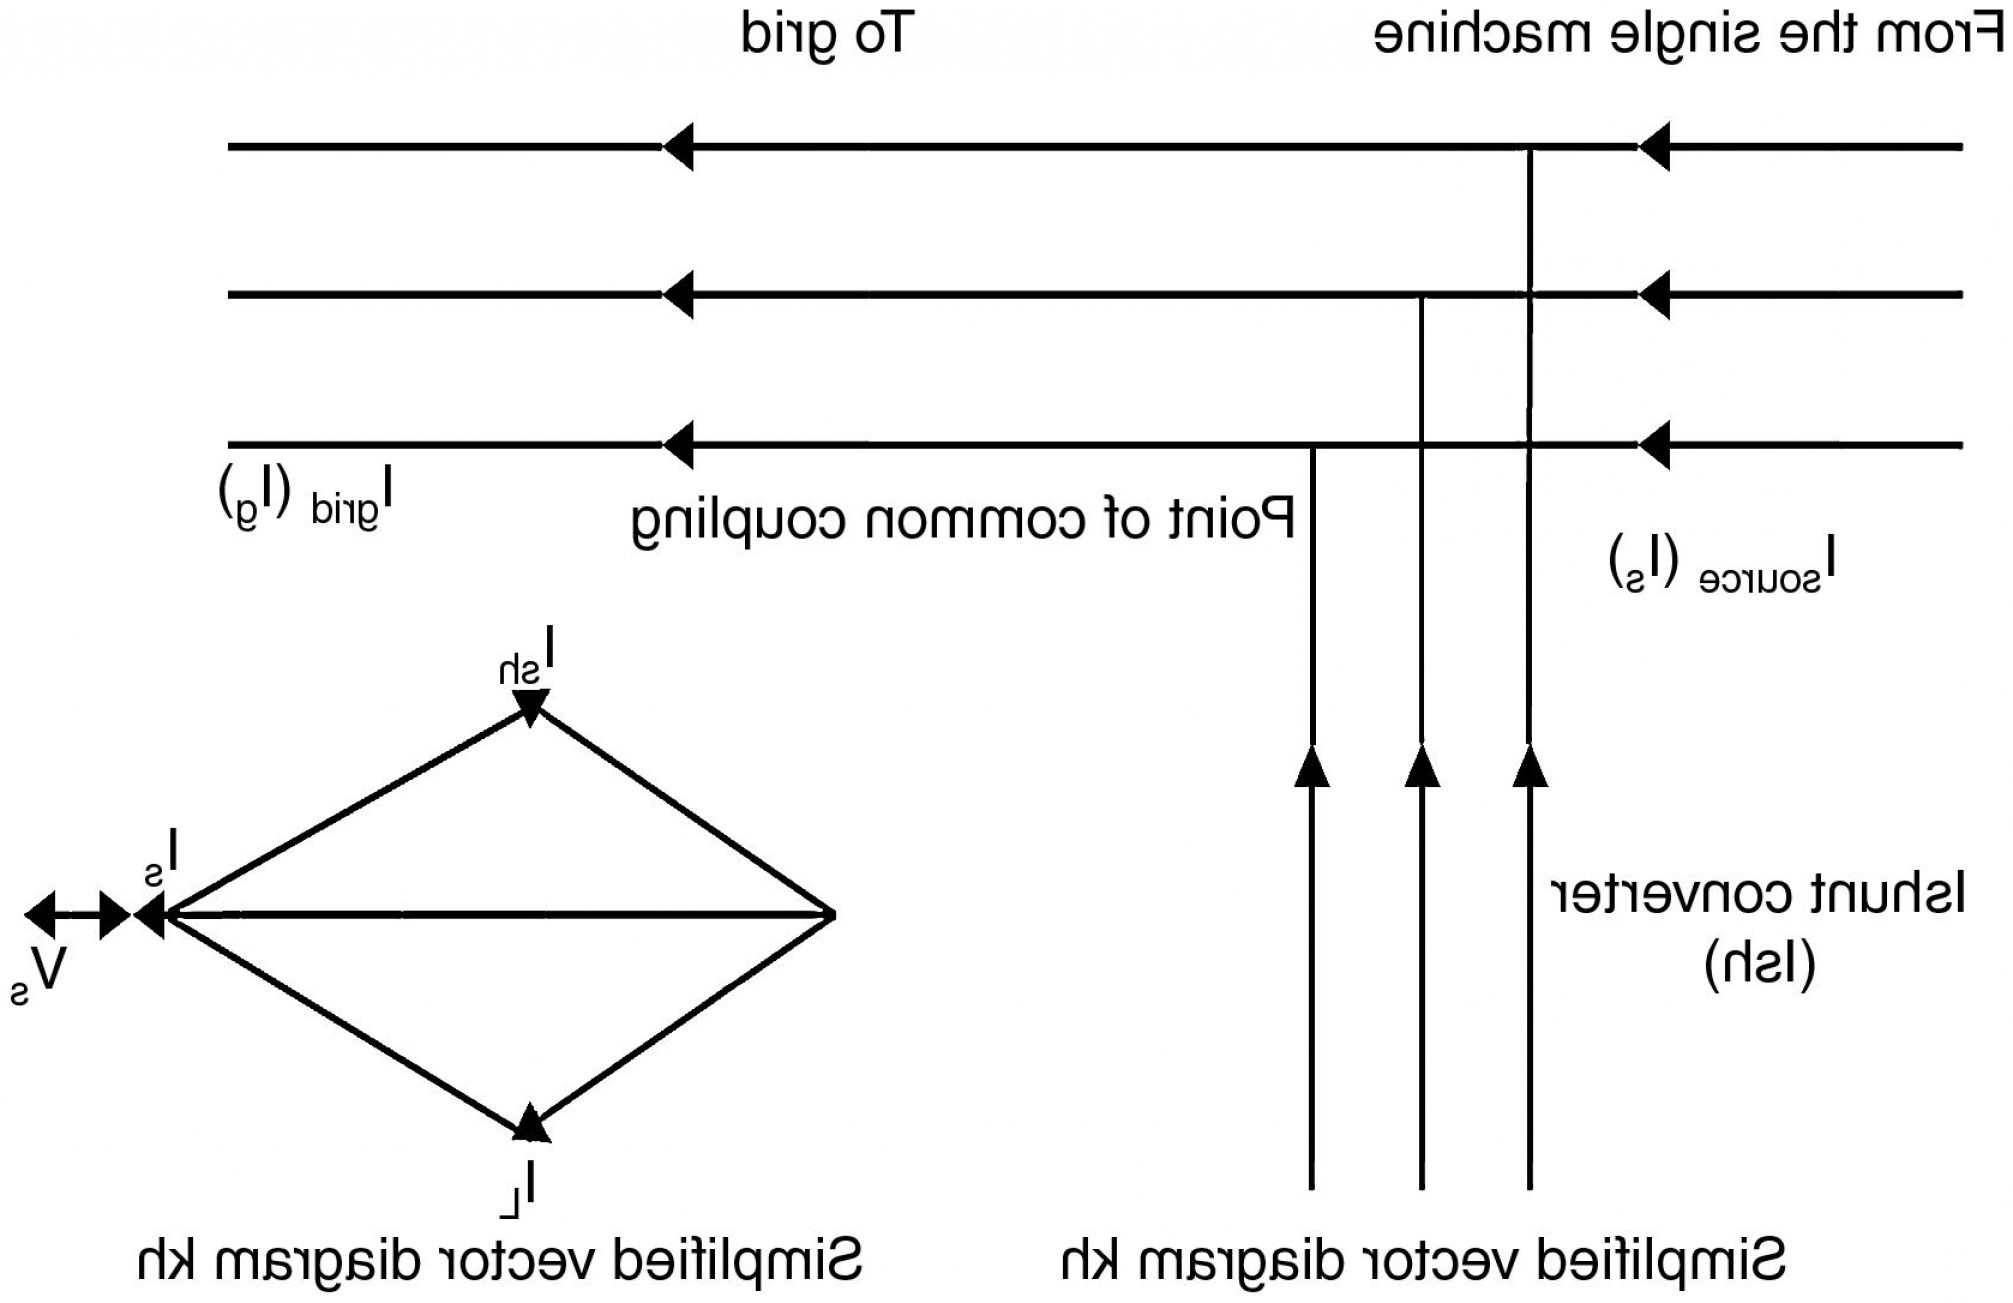 Reactance Vector Diagrams: Es Revista Journal Applied Research Technology Jart Articulo Particle Swarm Optimization Pso Based Tuning S